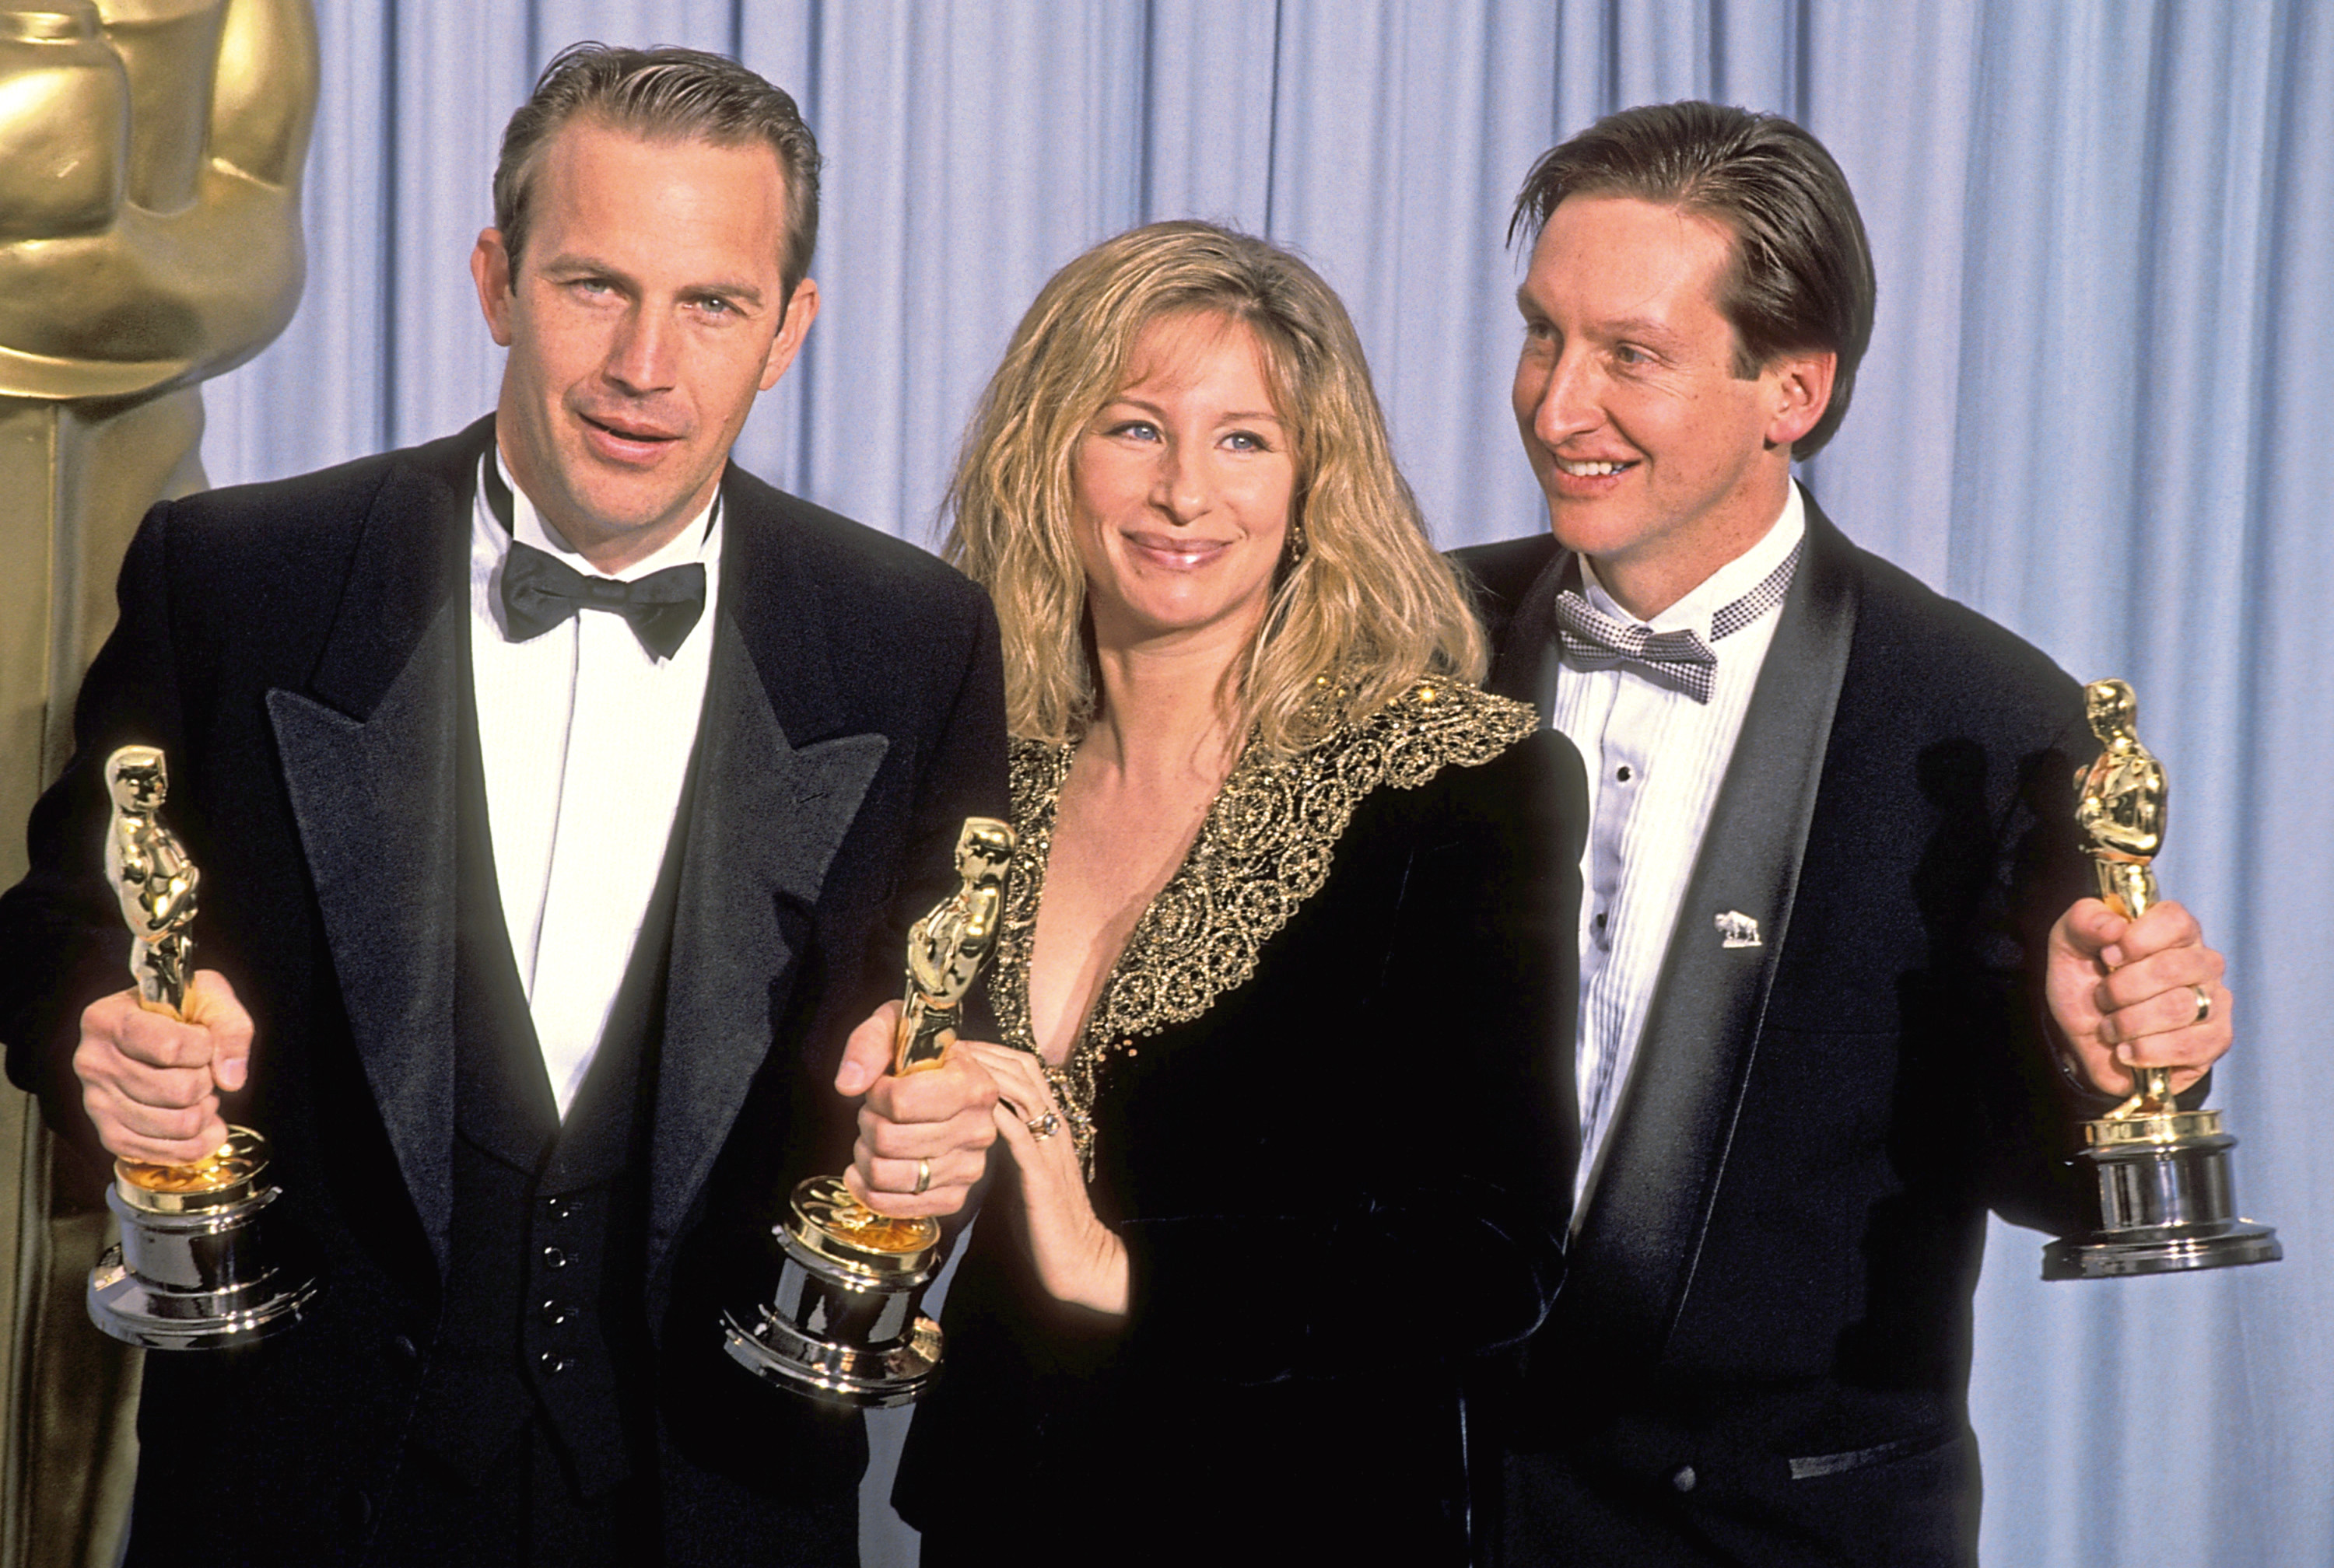 """Kevin Costner and Jim Wilson, winners Best Picture for """"Dances with Wolves,"""" with Barbra Streisand, presenter (center) (Ron Galella/WireImage)"""